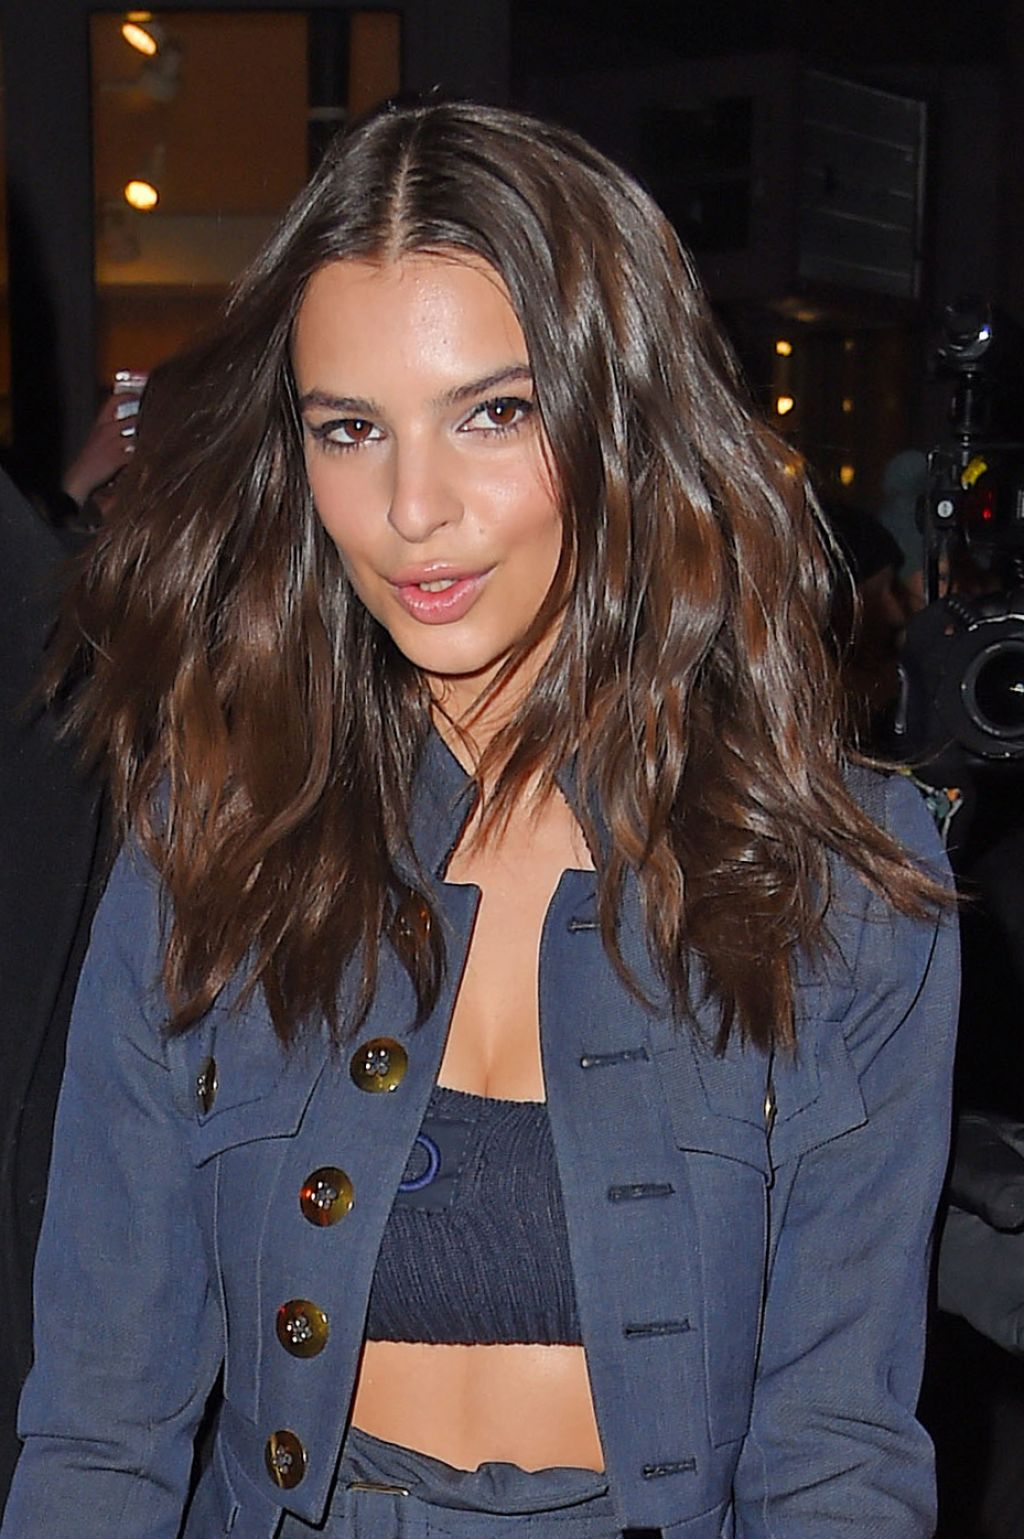 Emily Ratajkowski Style - Out in New York City, February 2015